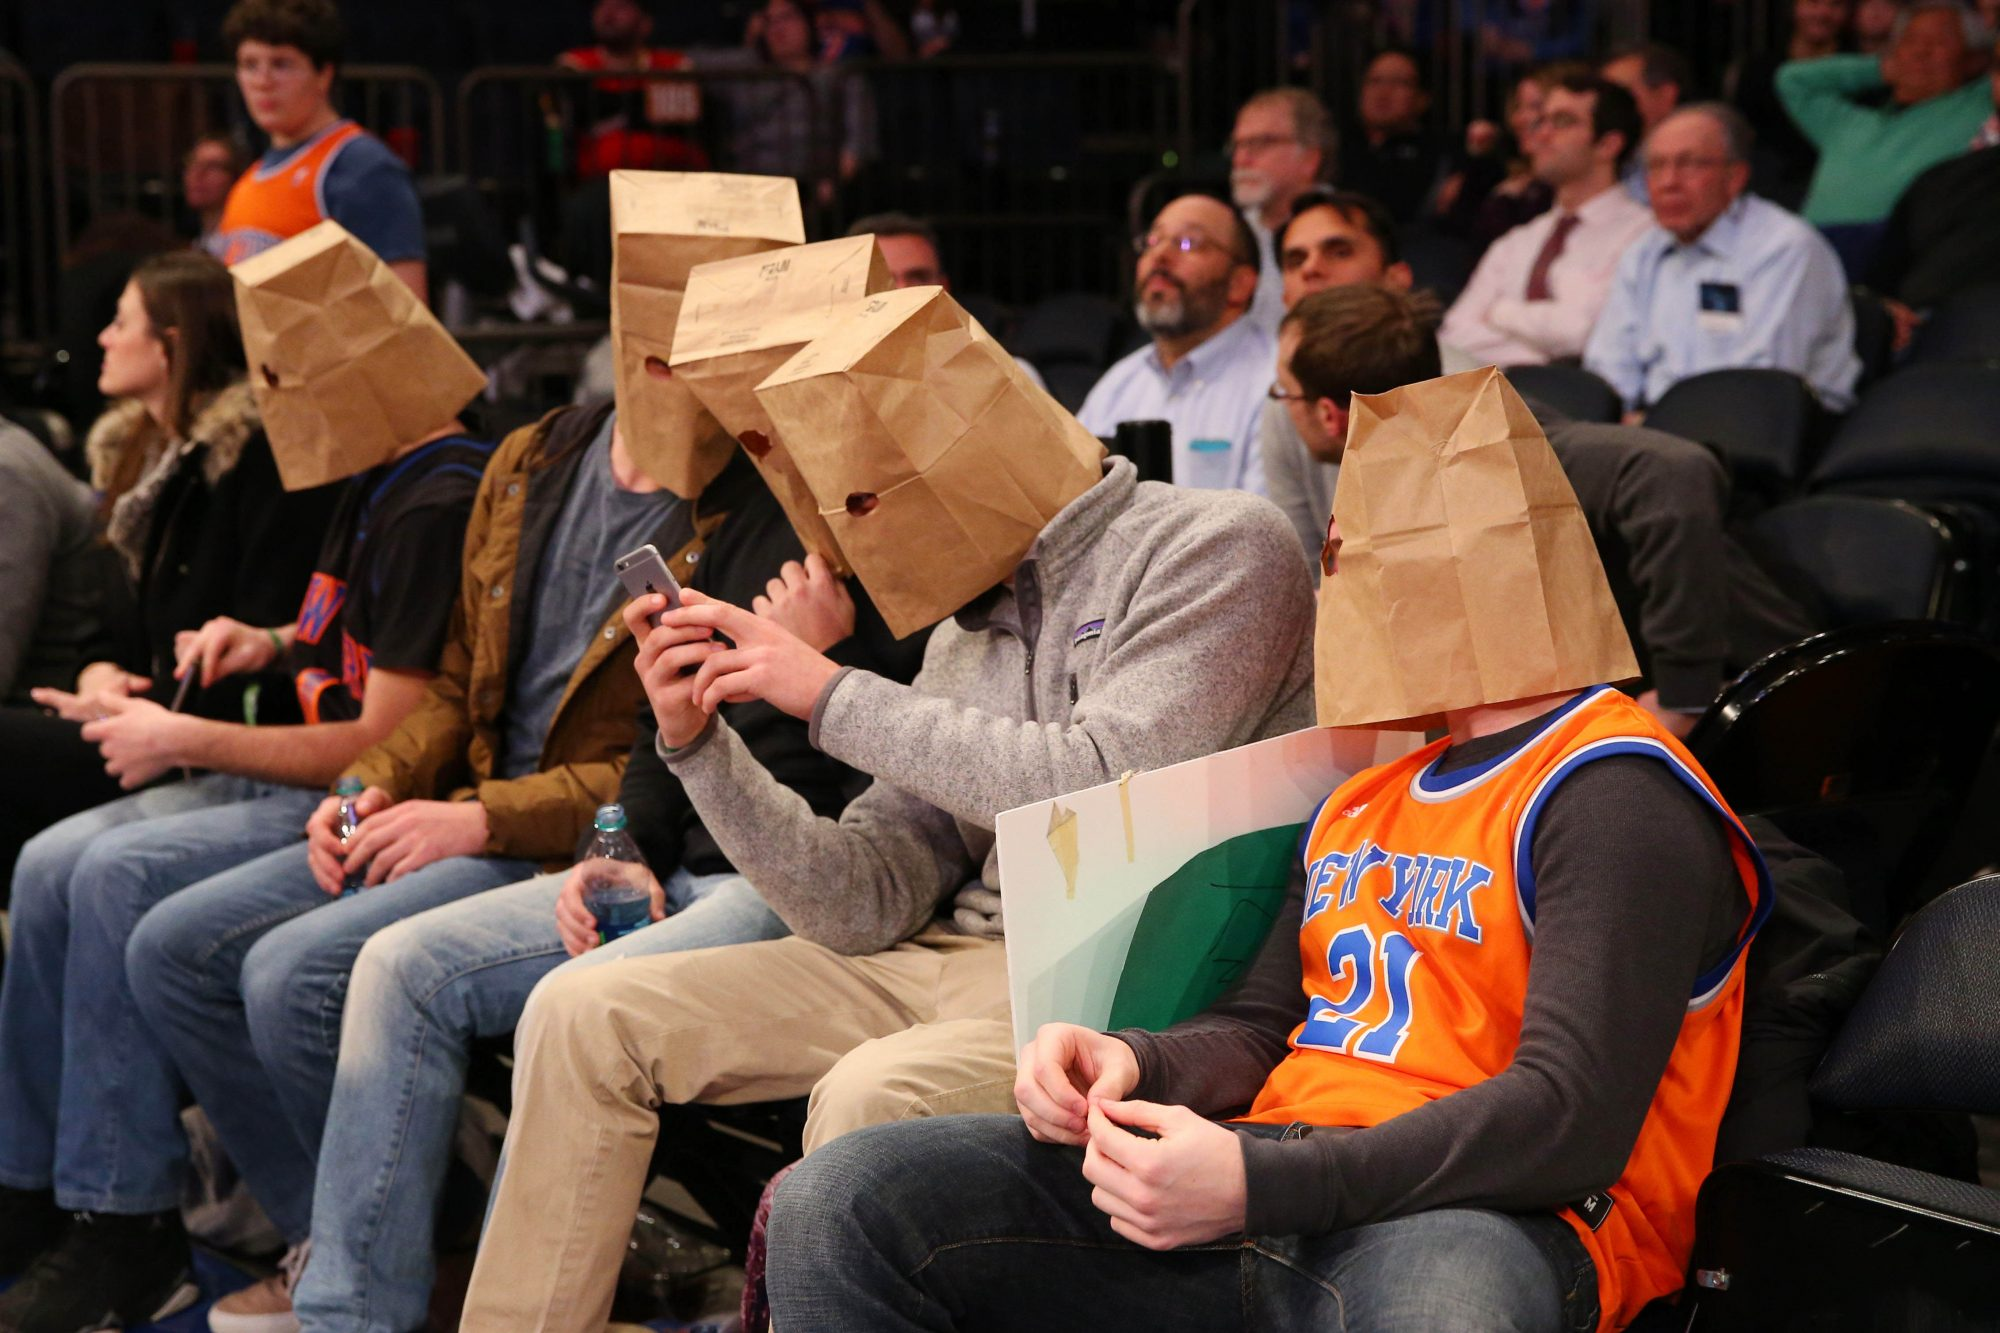 When Will the New York Knicks Give Big Apple Sports Fans Something to Cheer About?